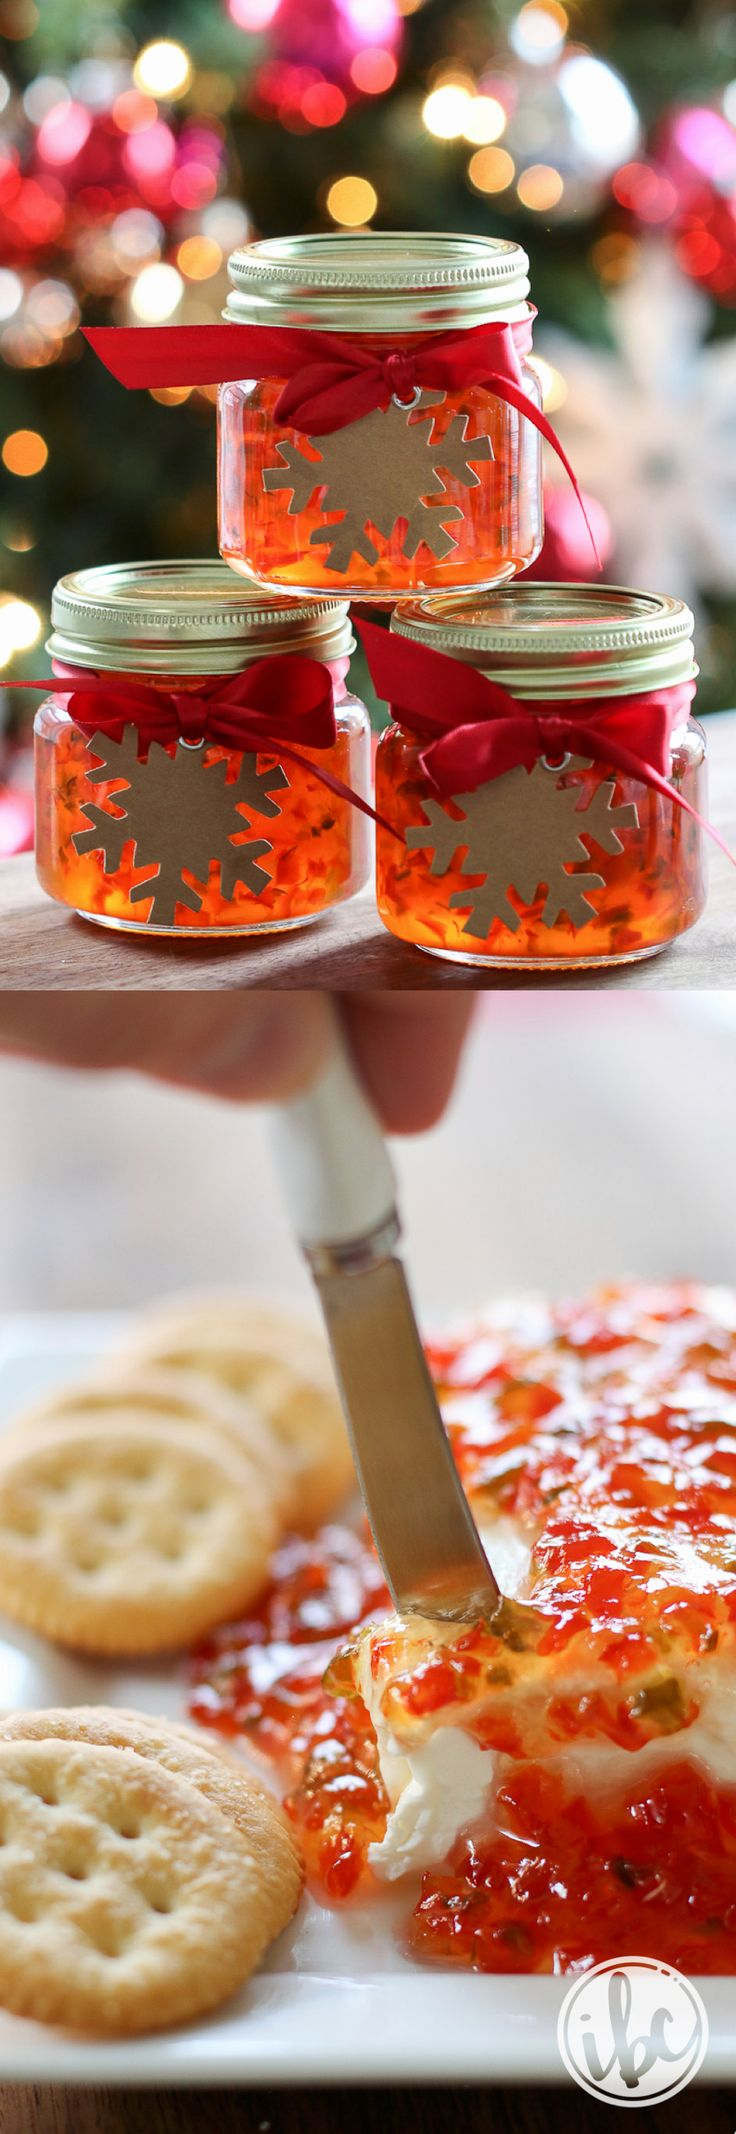 25+ Best Ideas About Christmas Appetizers On Pinterest